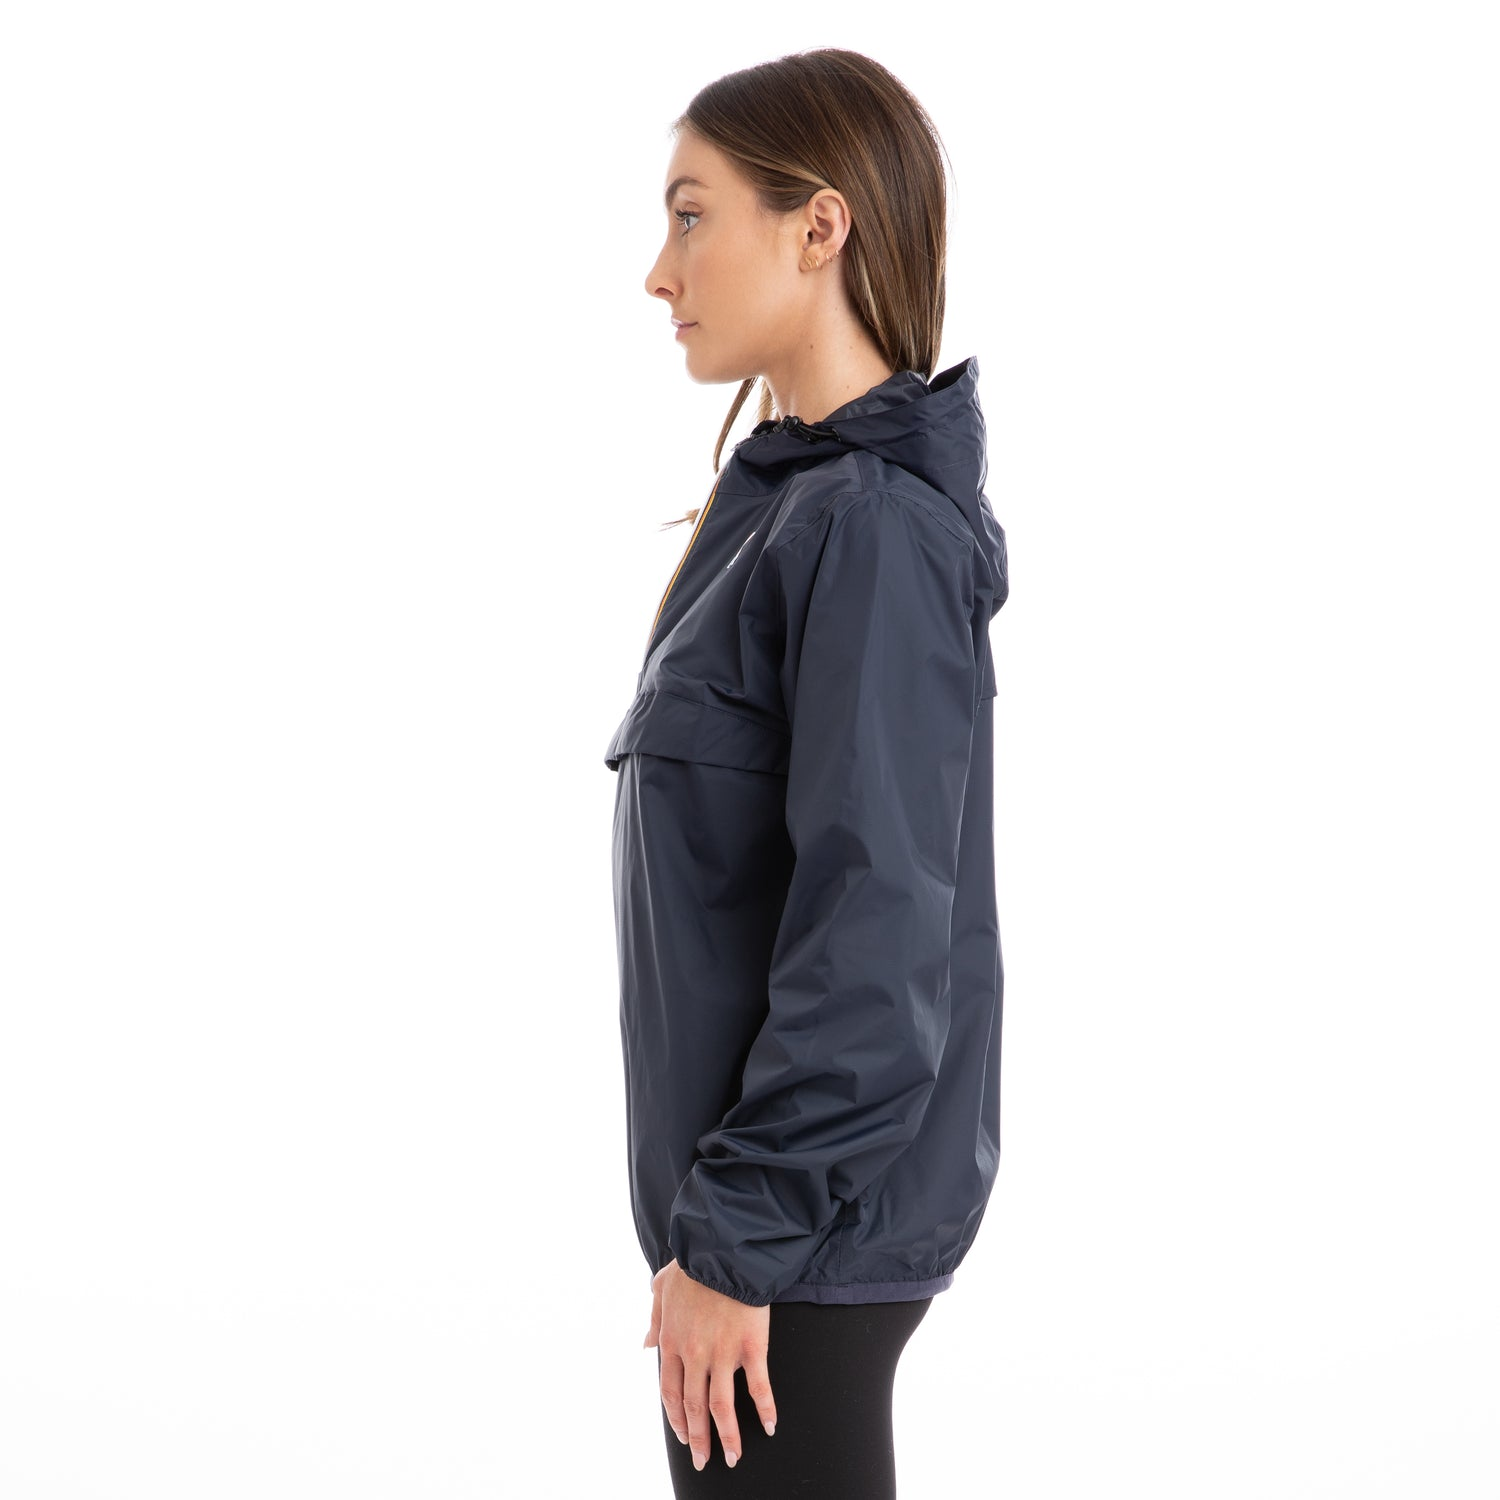 K-Way Women's Le Vrai 3.0 Leon Half Zip Jacket Blue Depth